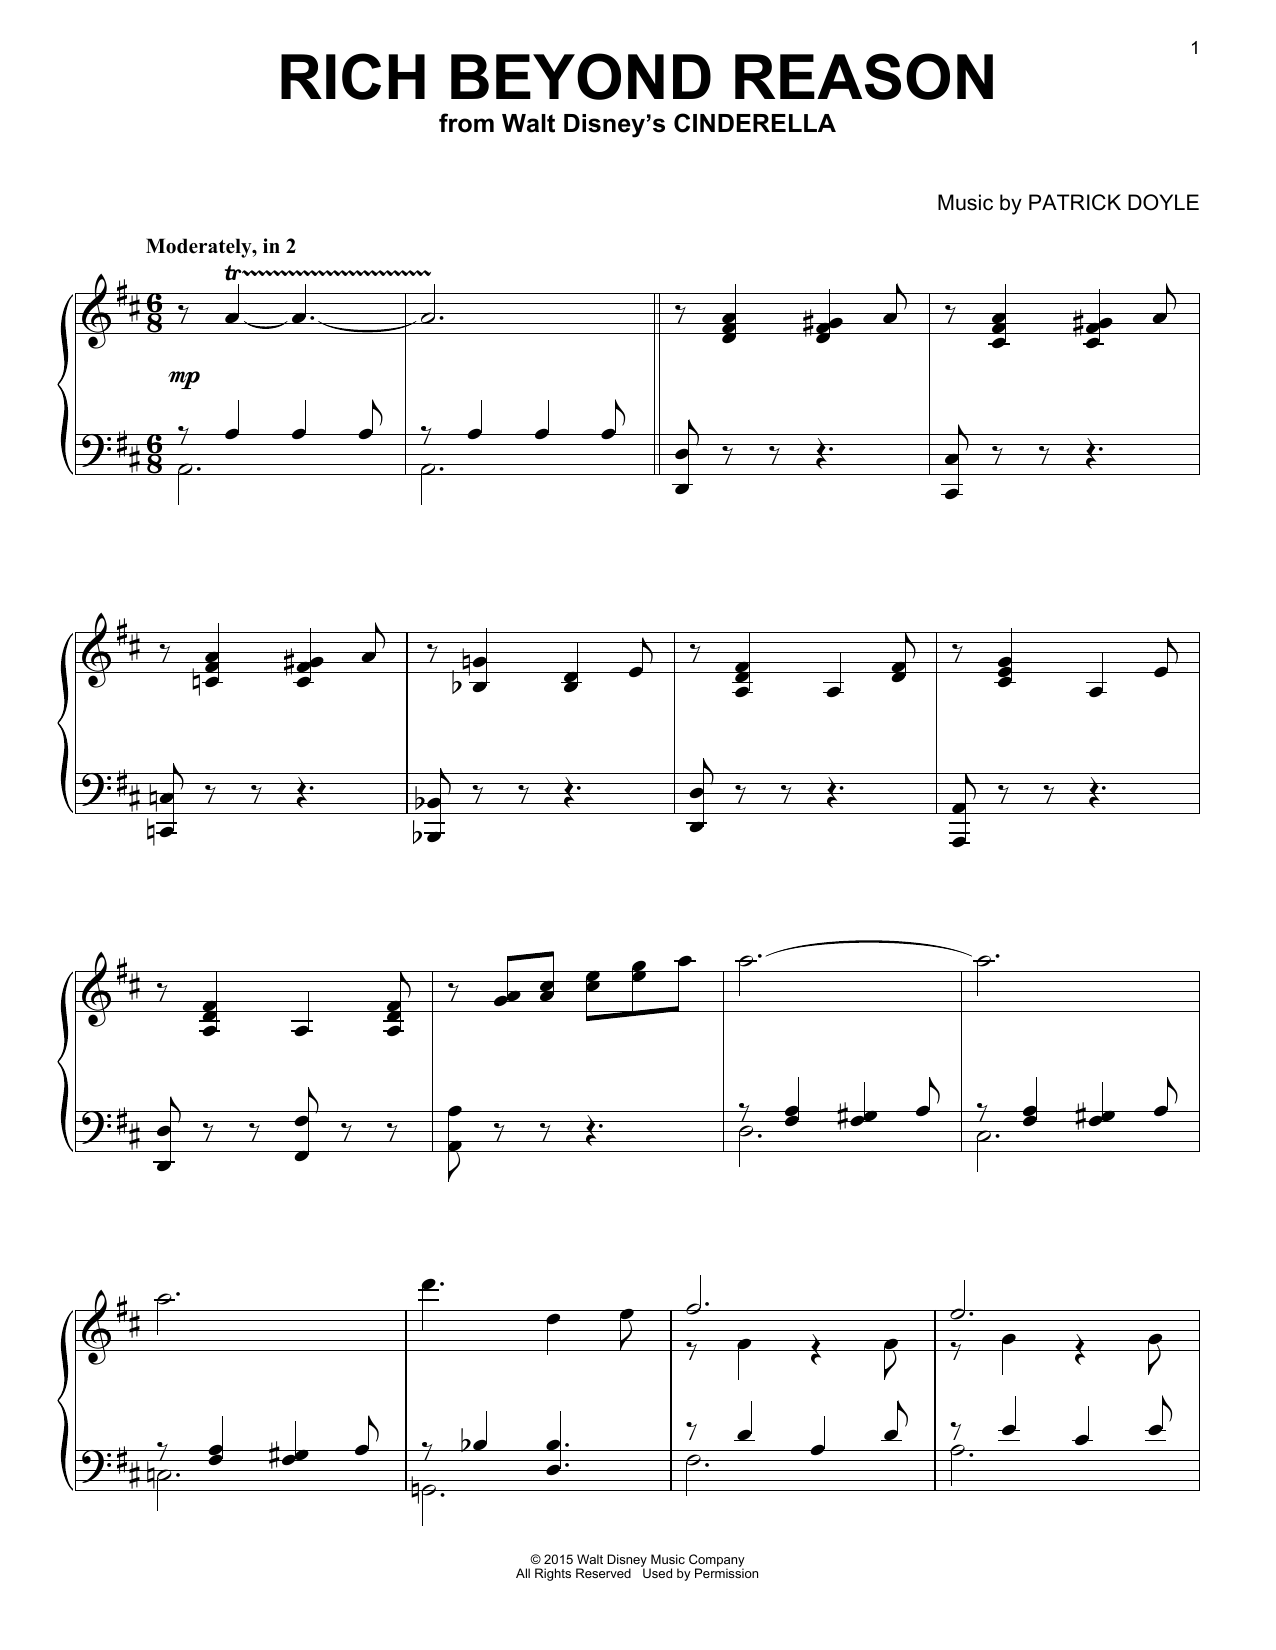 Rich Beyond Reason (from Walt Disney's Cinderella) Sheet Music